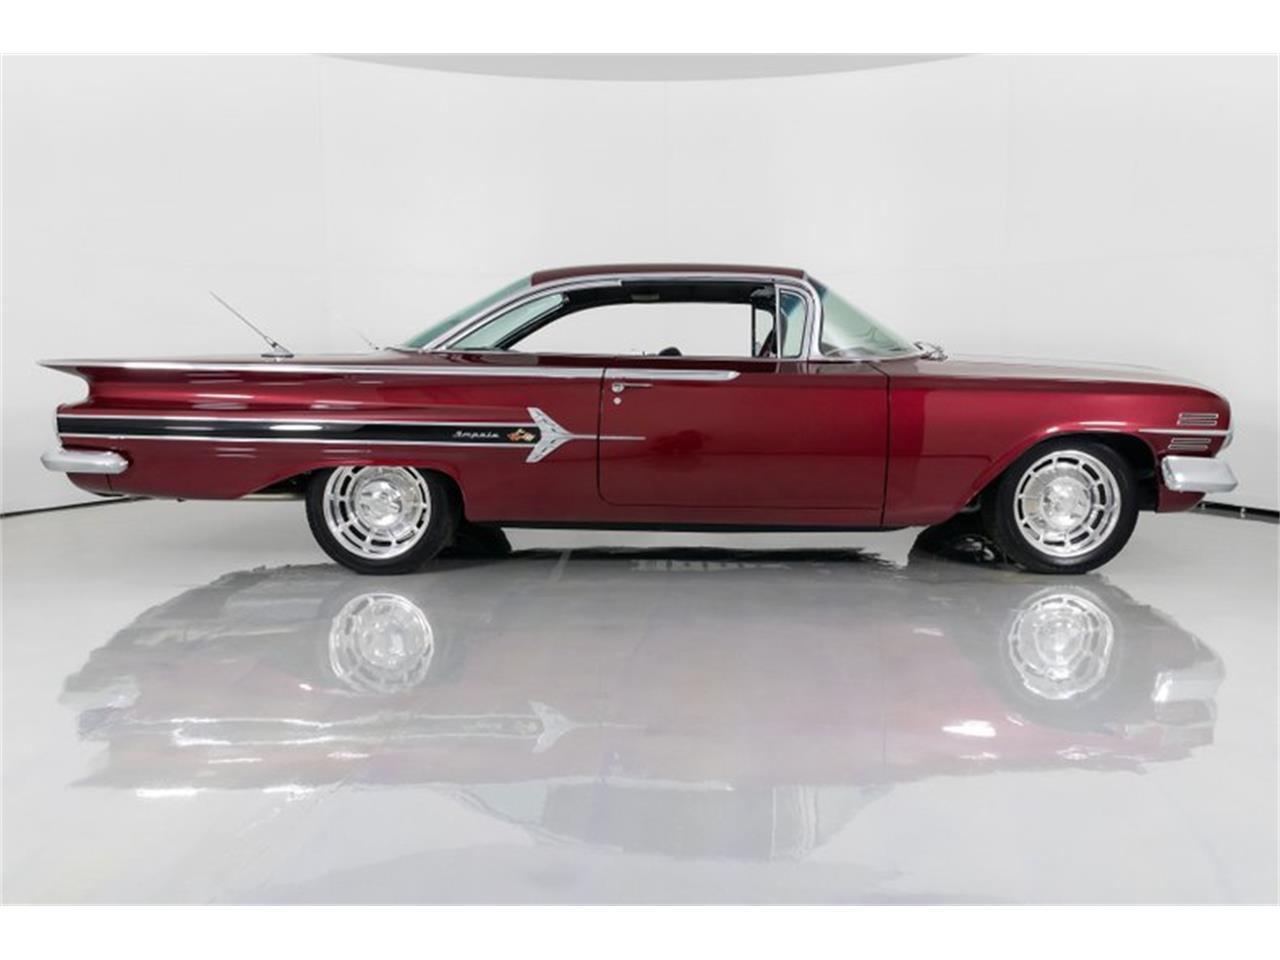 1960 Chevrolet Impala (CC-1410867) for sale in St. Charles, Missouri